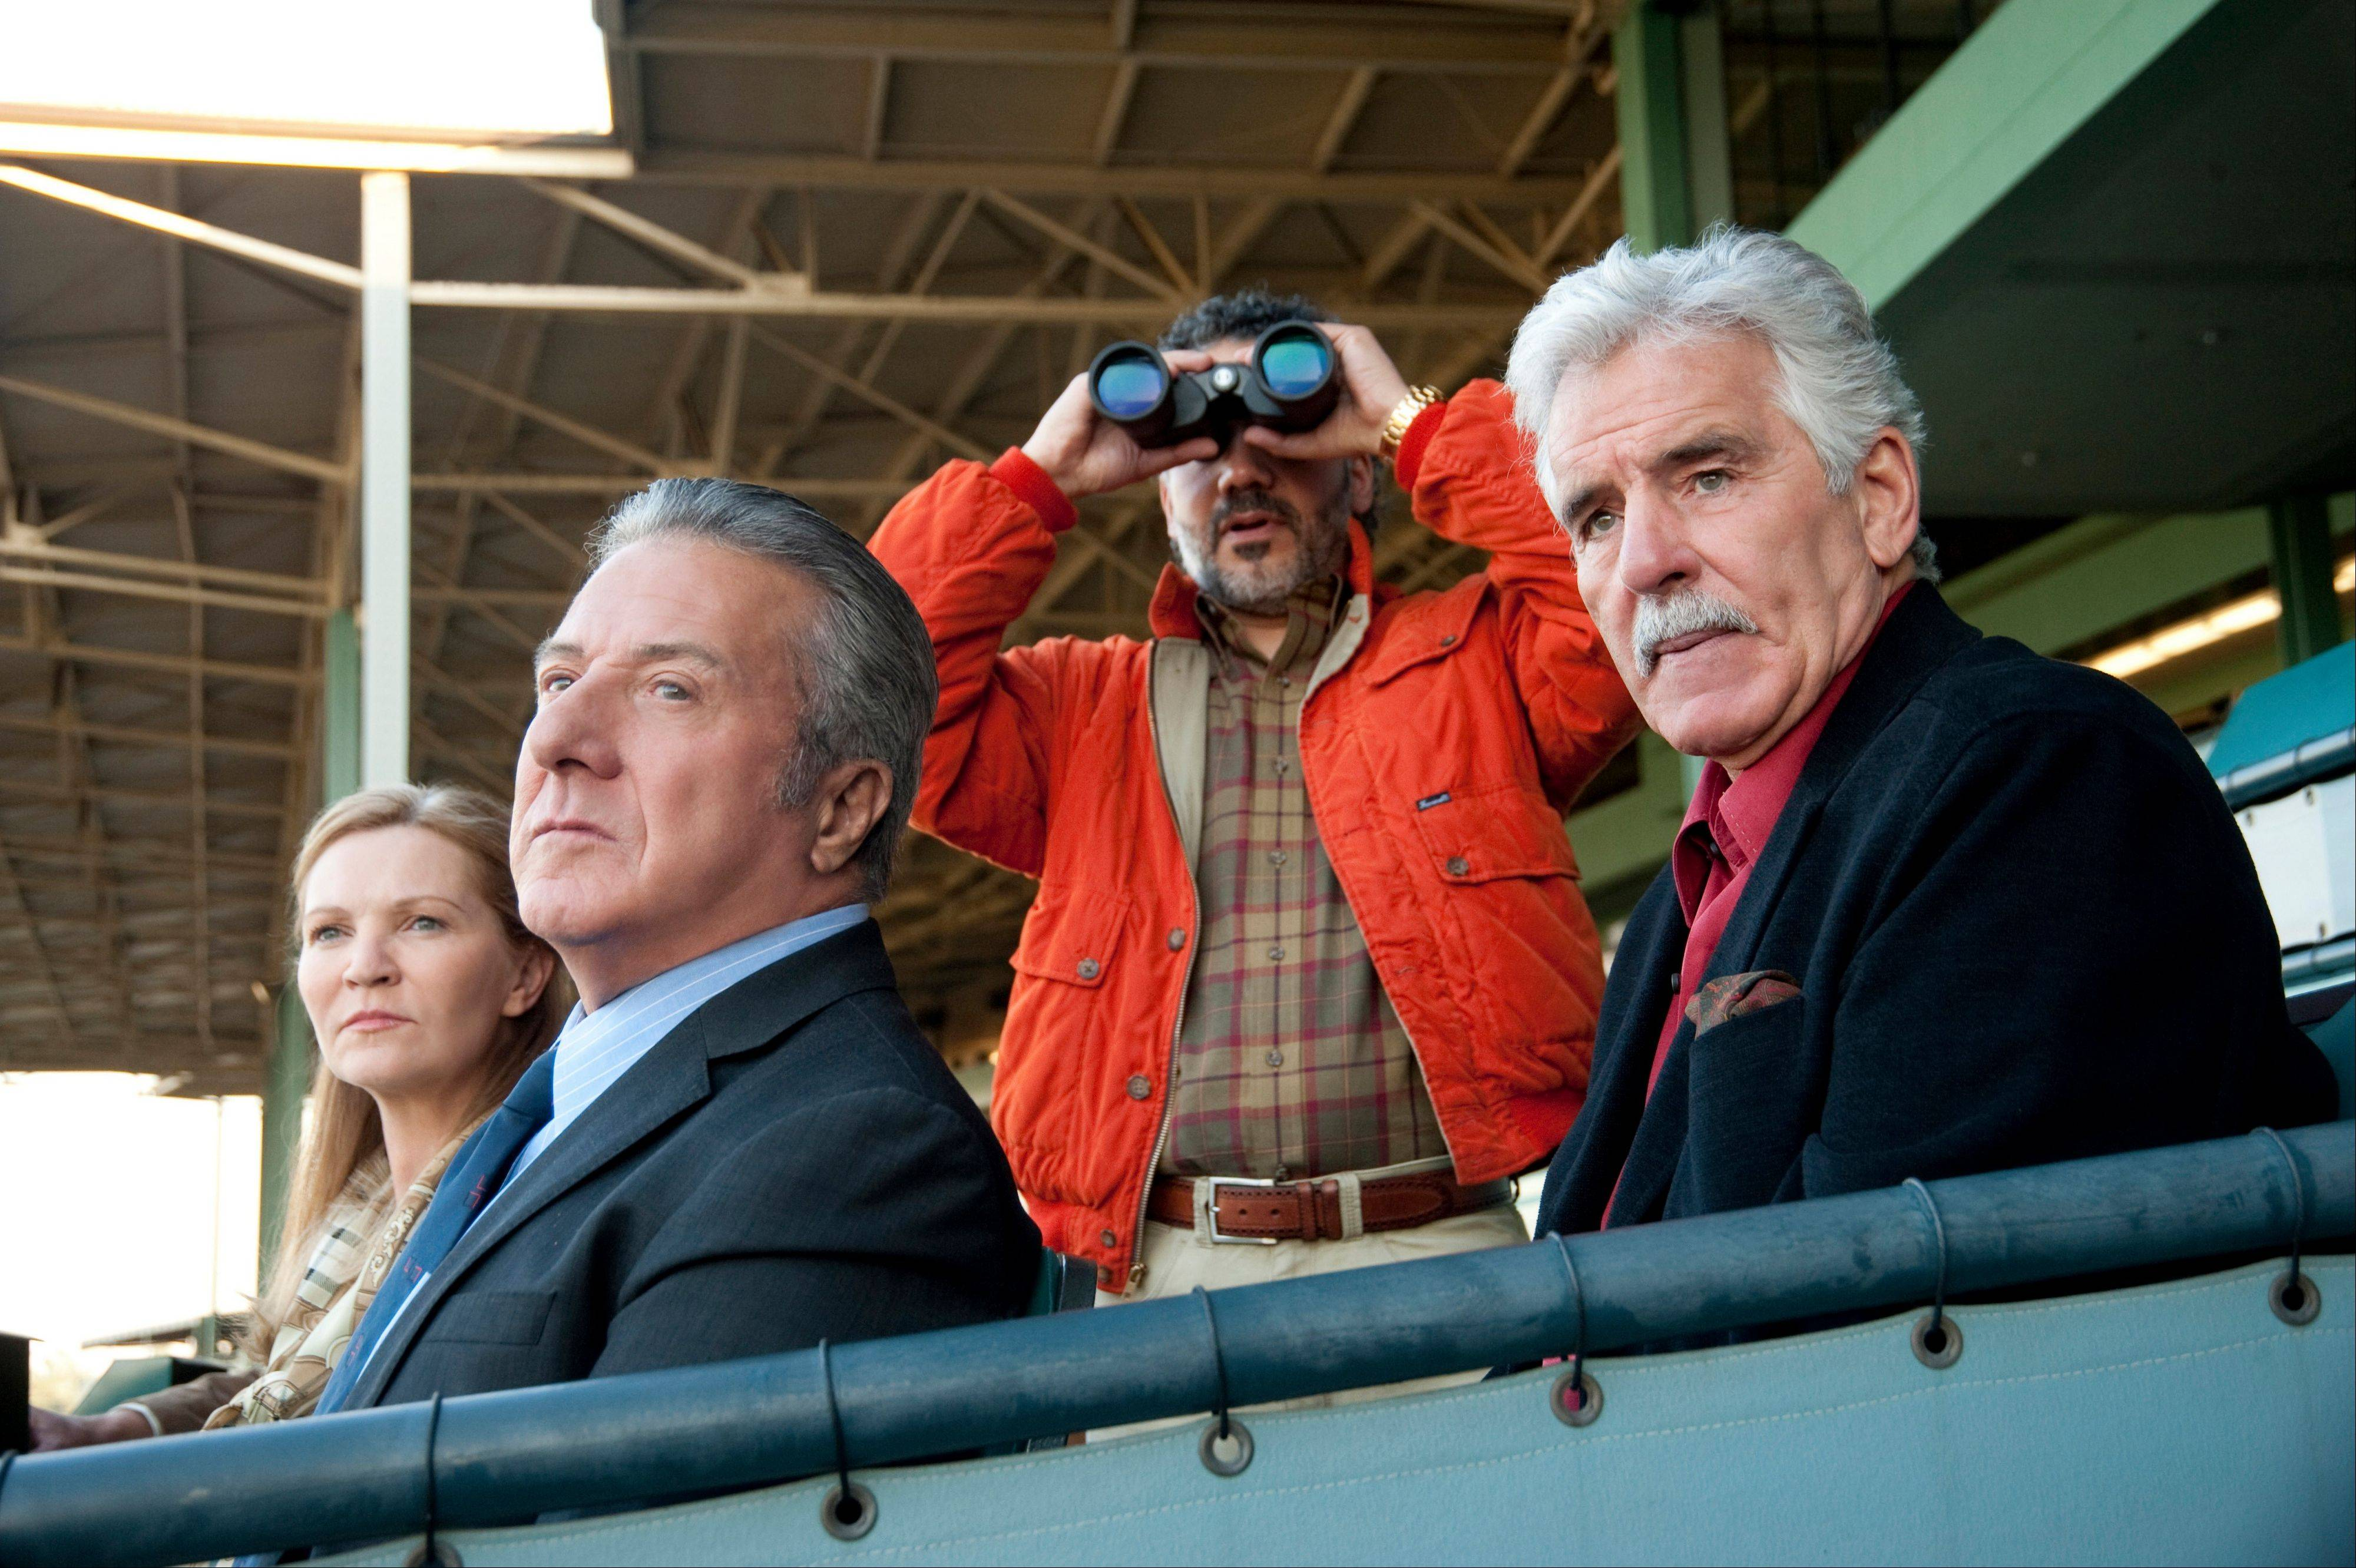 """Luck"" proved unlucky indeed. The drama boasted an incredible cast -- including Joan Allen, Dustin Hoffman, John Ortiz and Dennis Farina. But HBO canceled the horse racing series after a third horse died during production."